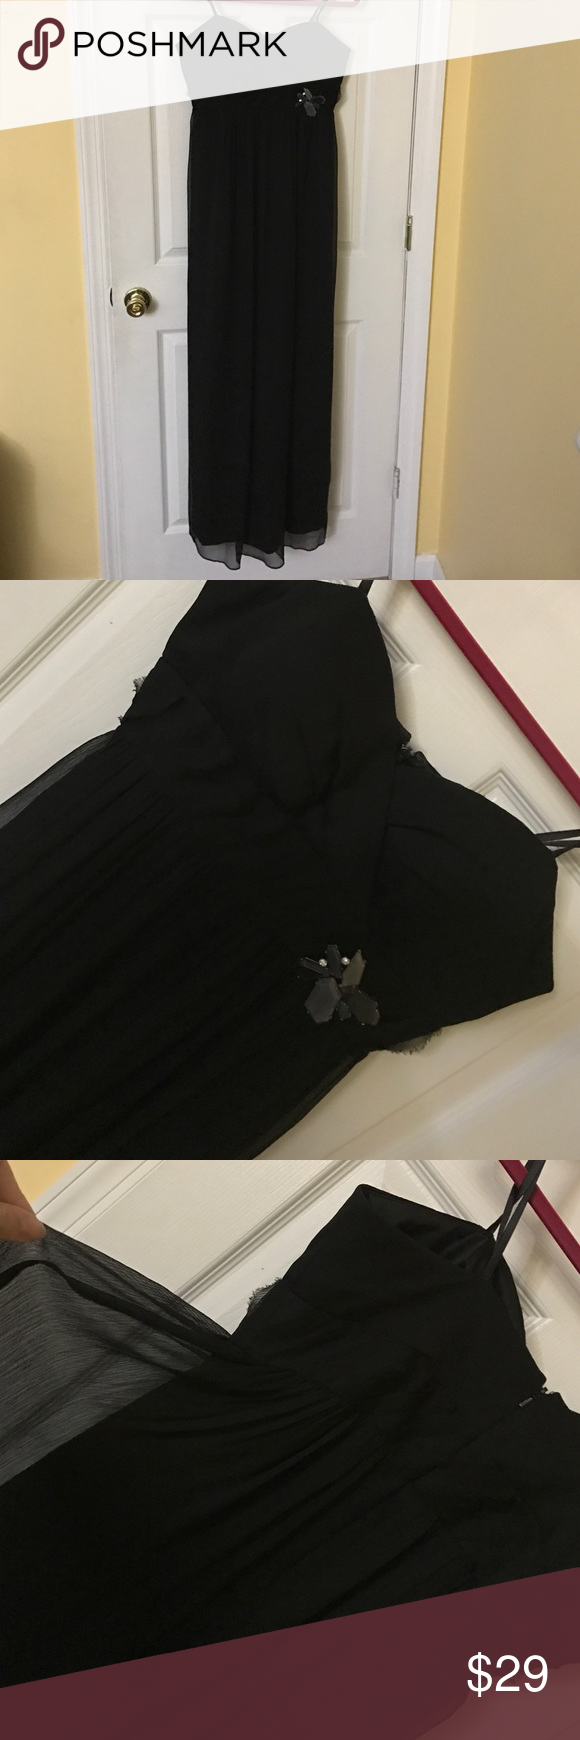 Black strapless dress chiffon with brooch Black strapless dress chiffon with brooch. For tight on chest and lose all the way down to ankles. BCBGeneration Dresses Strapless